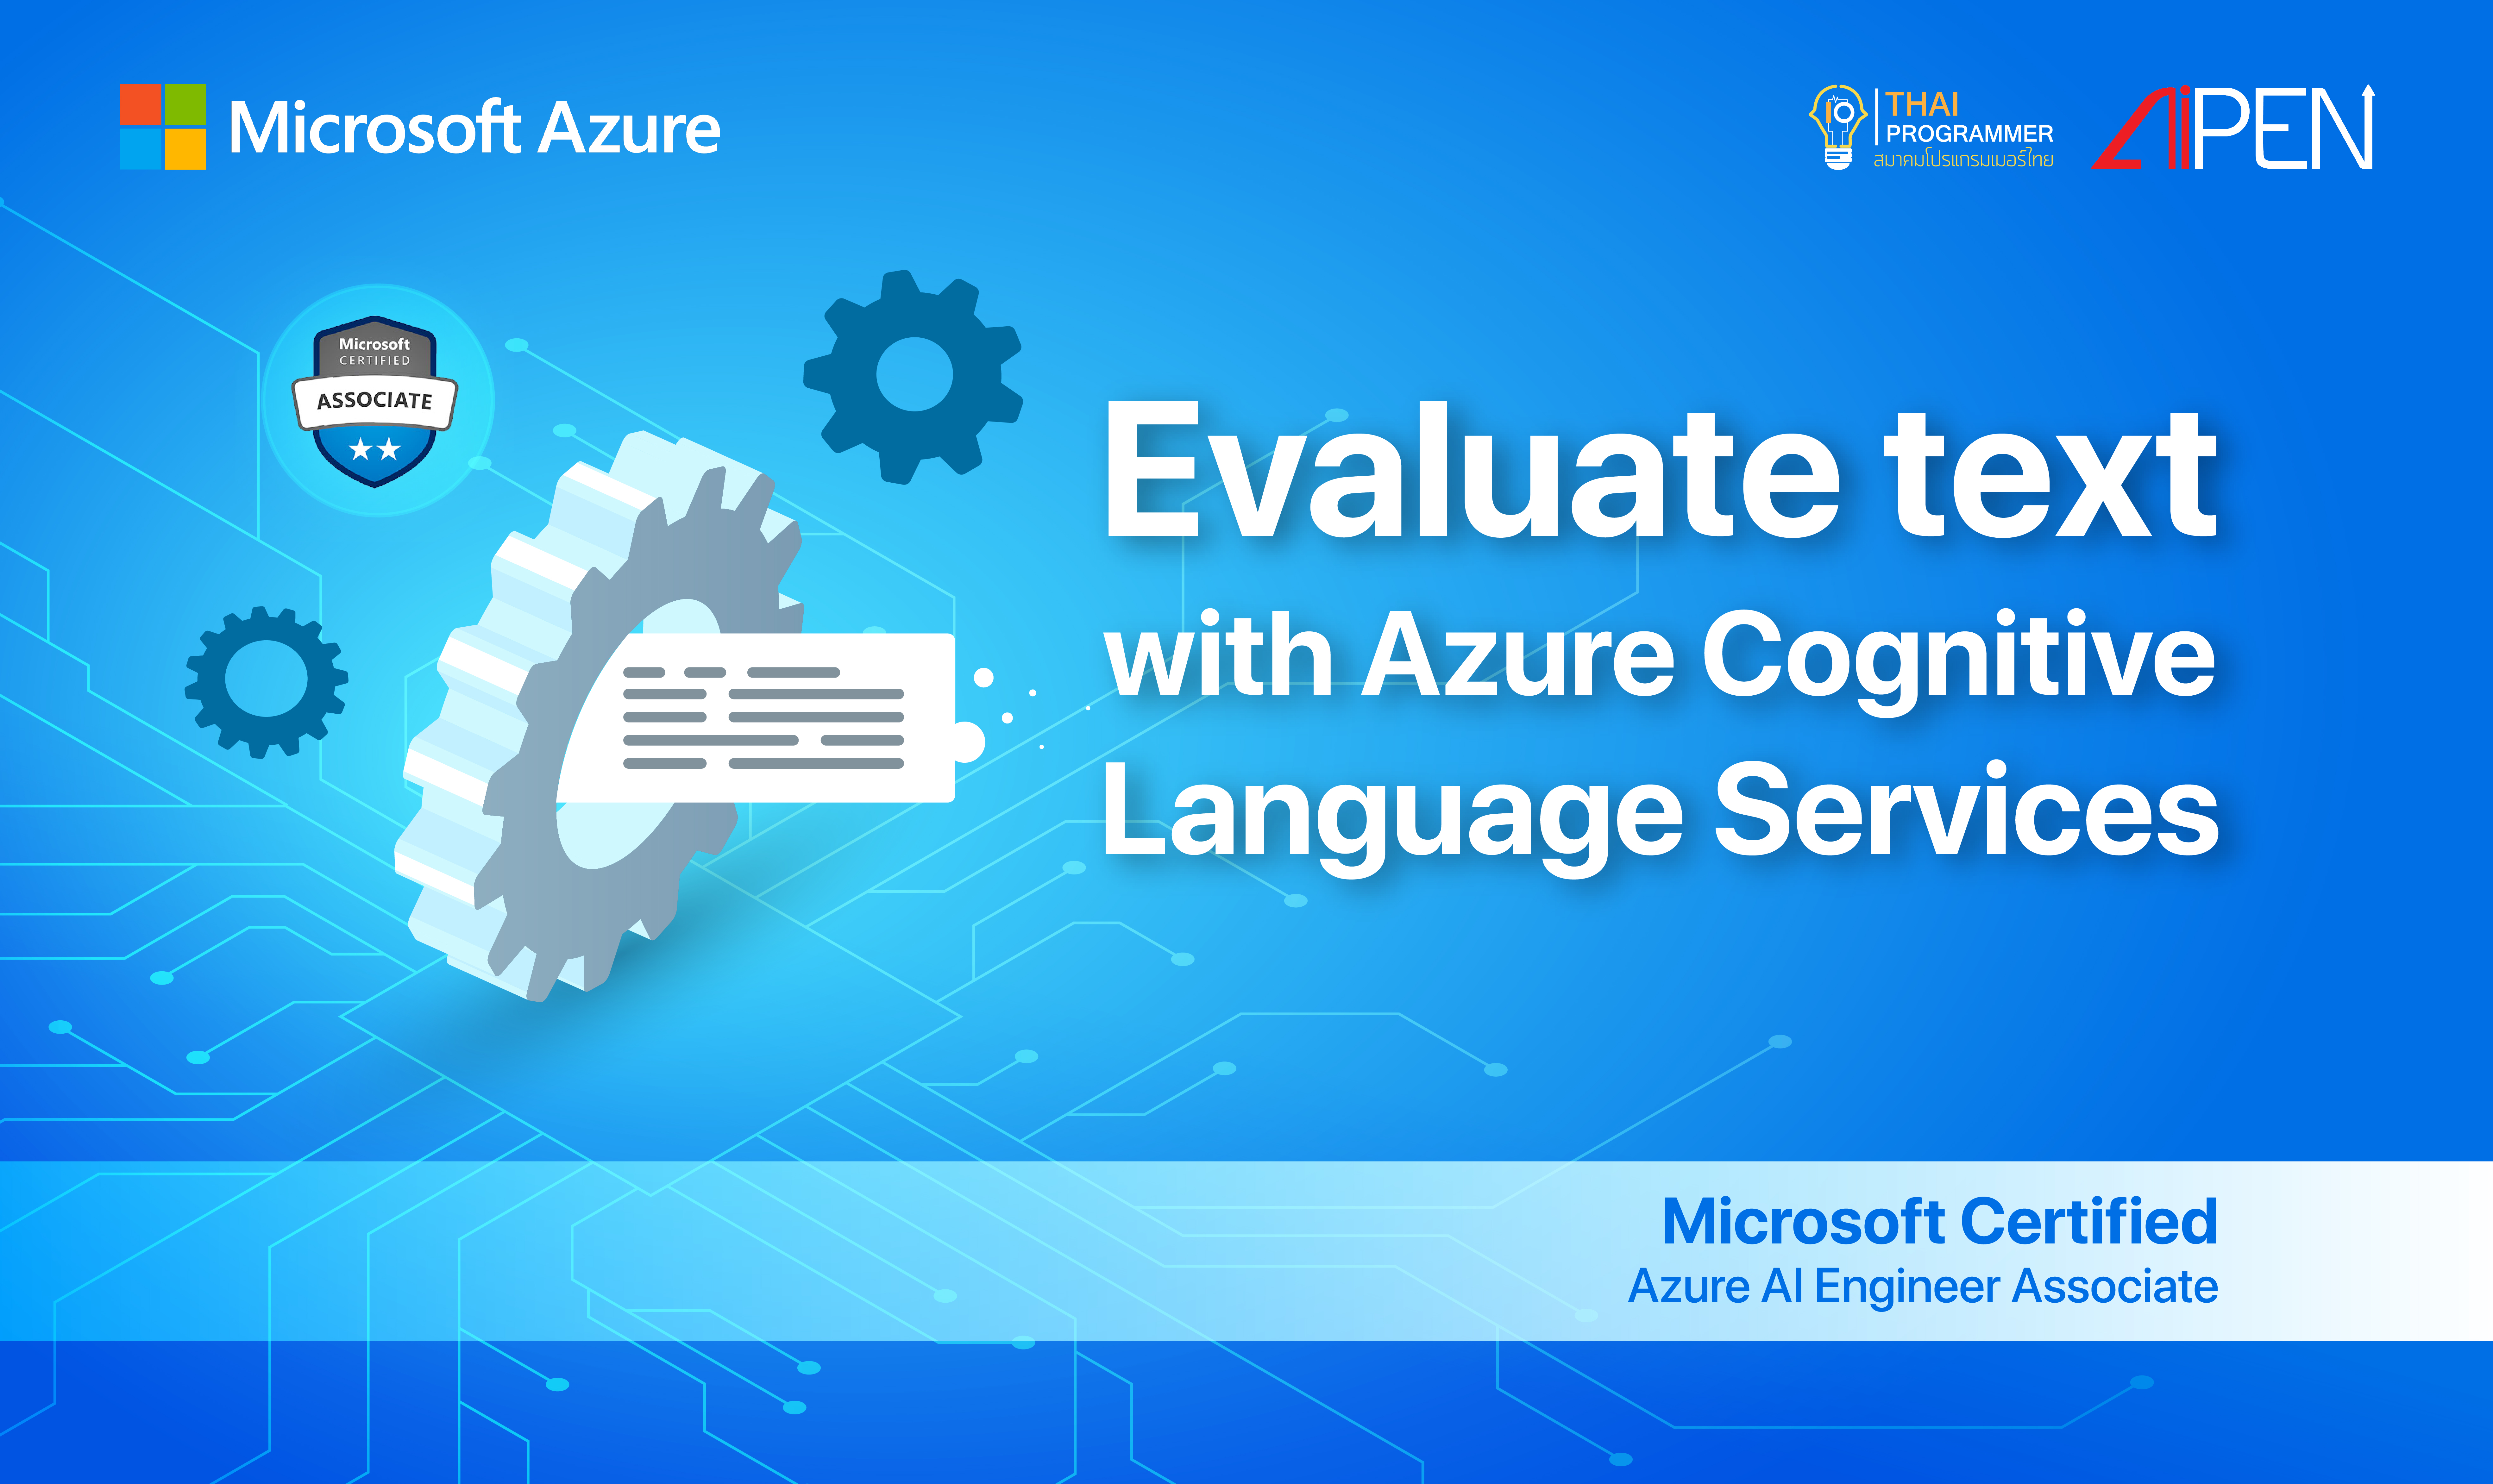 Microsoft Azure : Evaluate text with Azure Cognitive Language Services AZ-LEARN-16